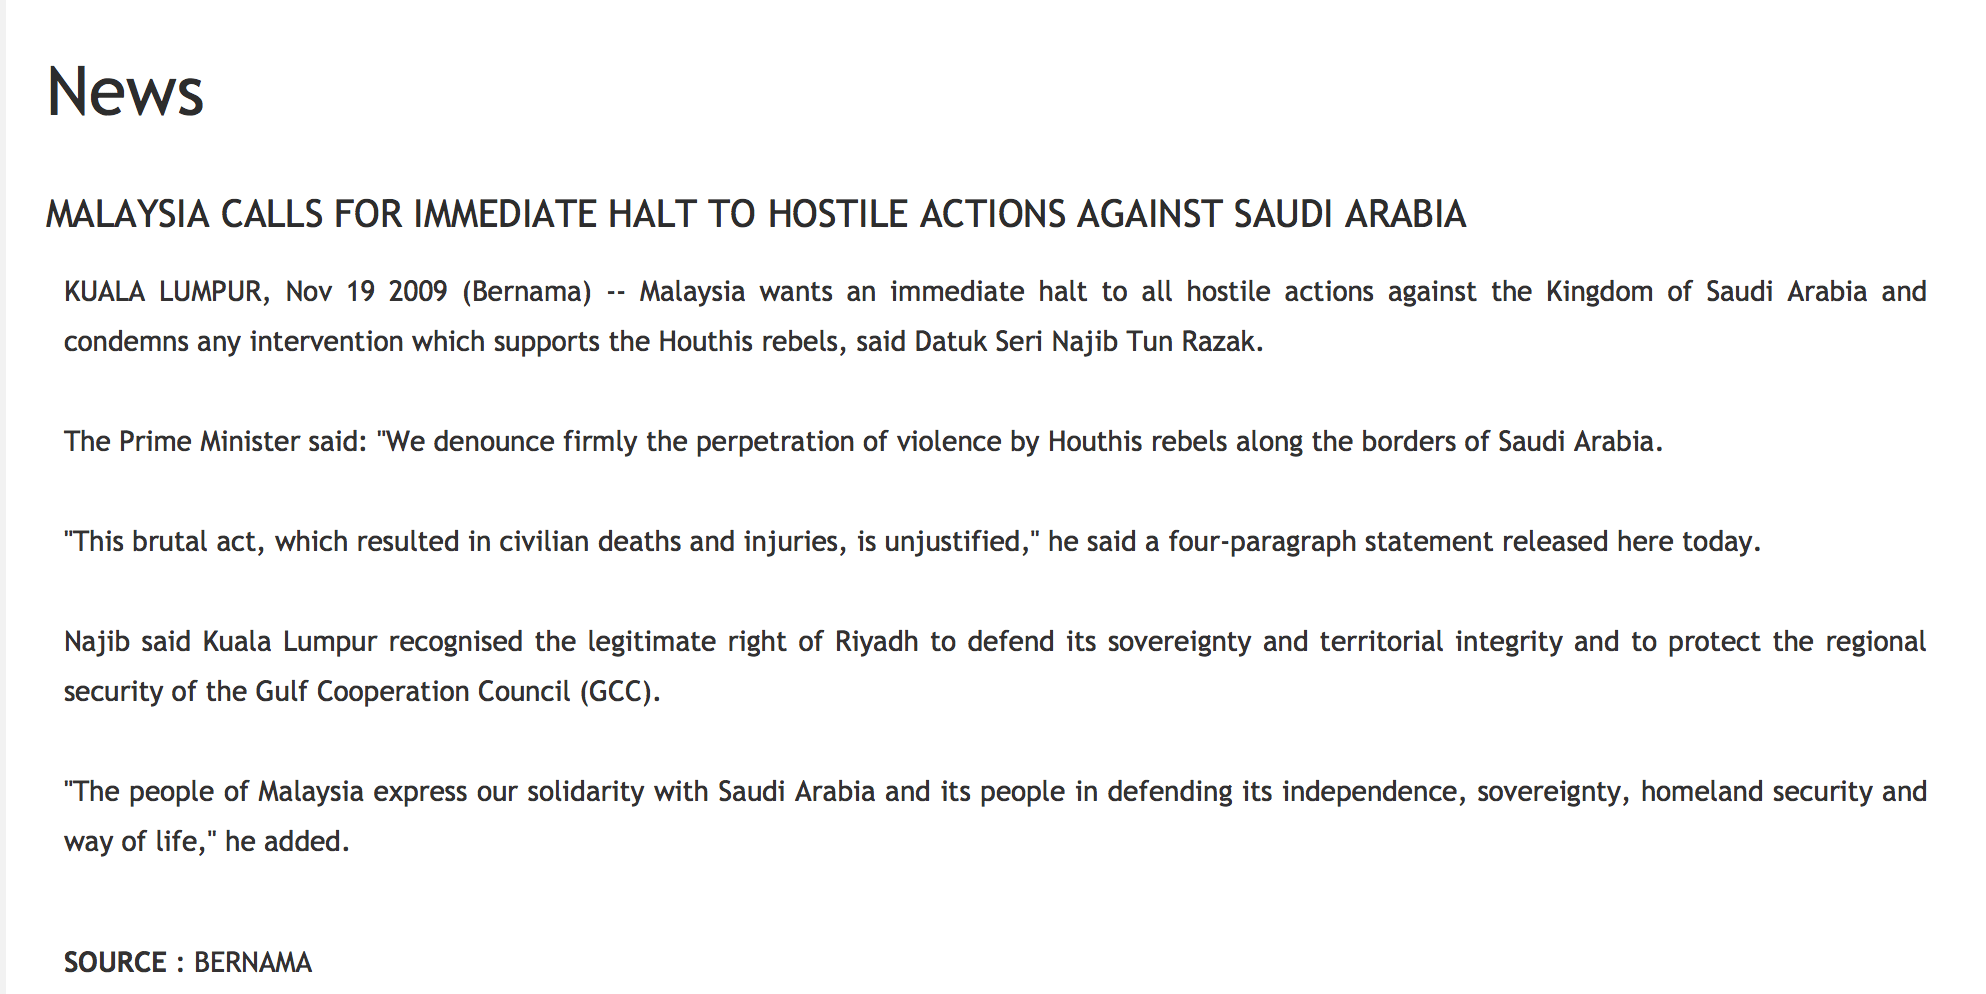 Fixed by Jho Low for Tarek - Malaysian solidarity for Saudi Arabia's attacks on North Yemen